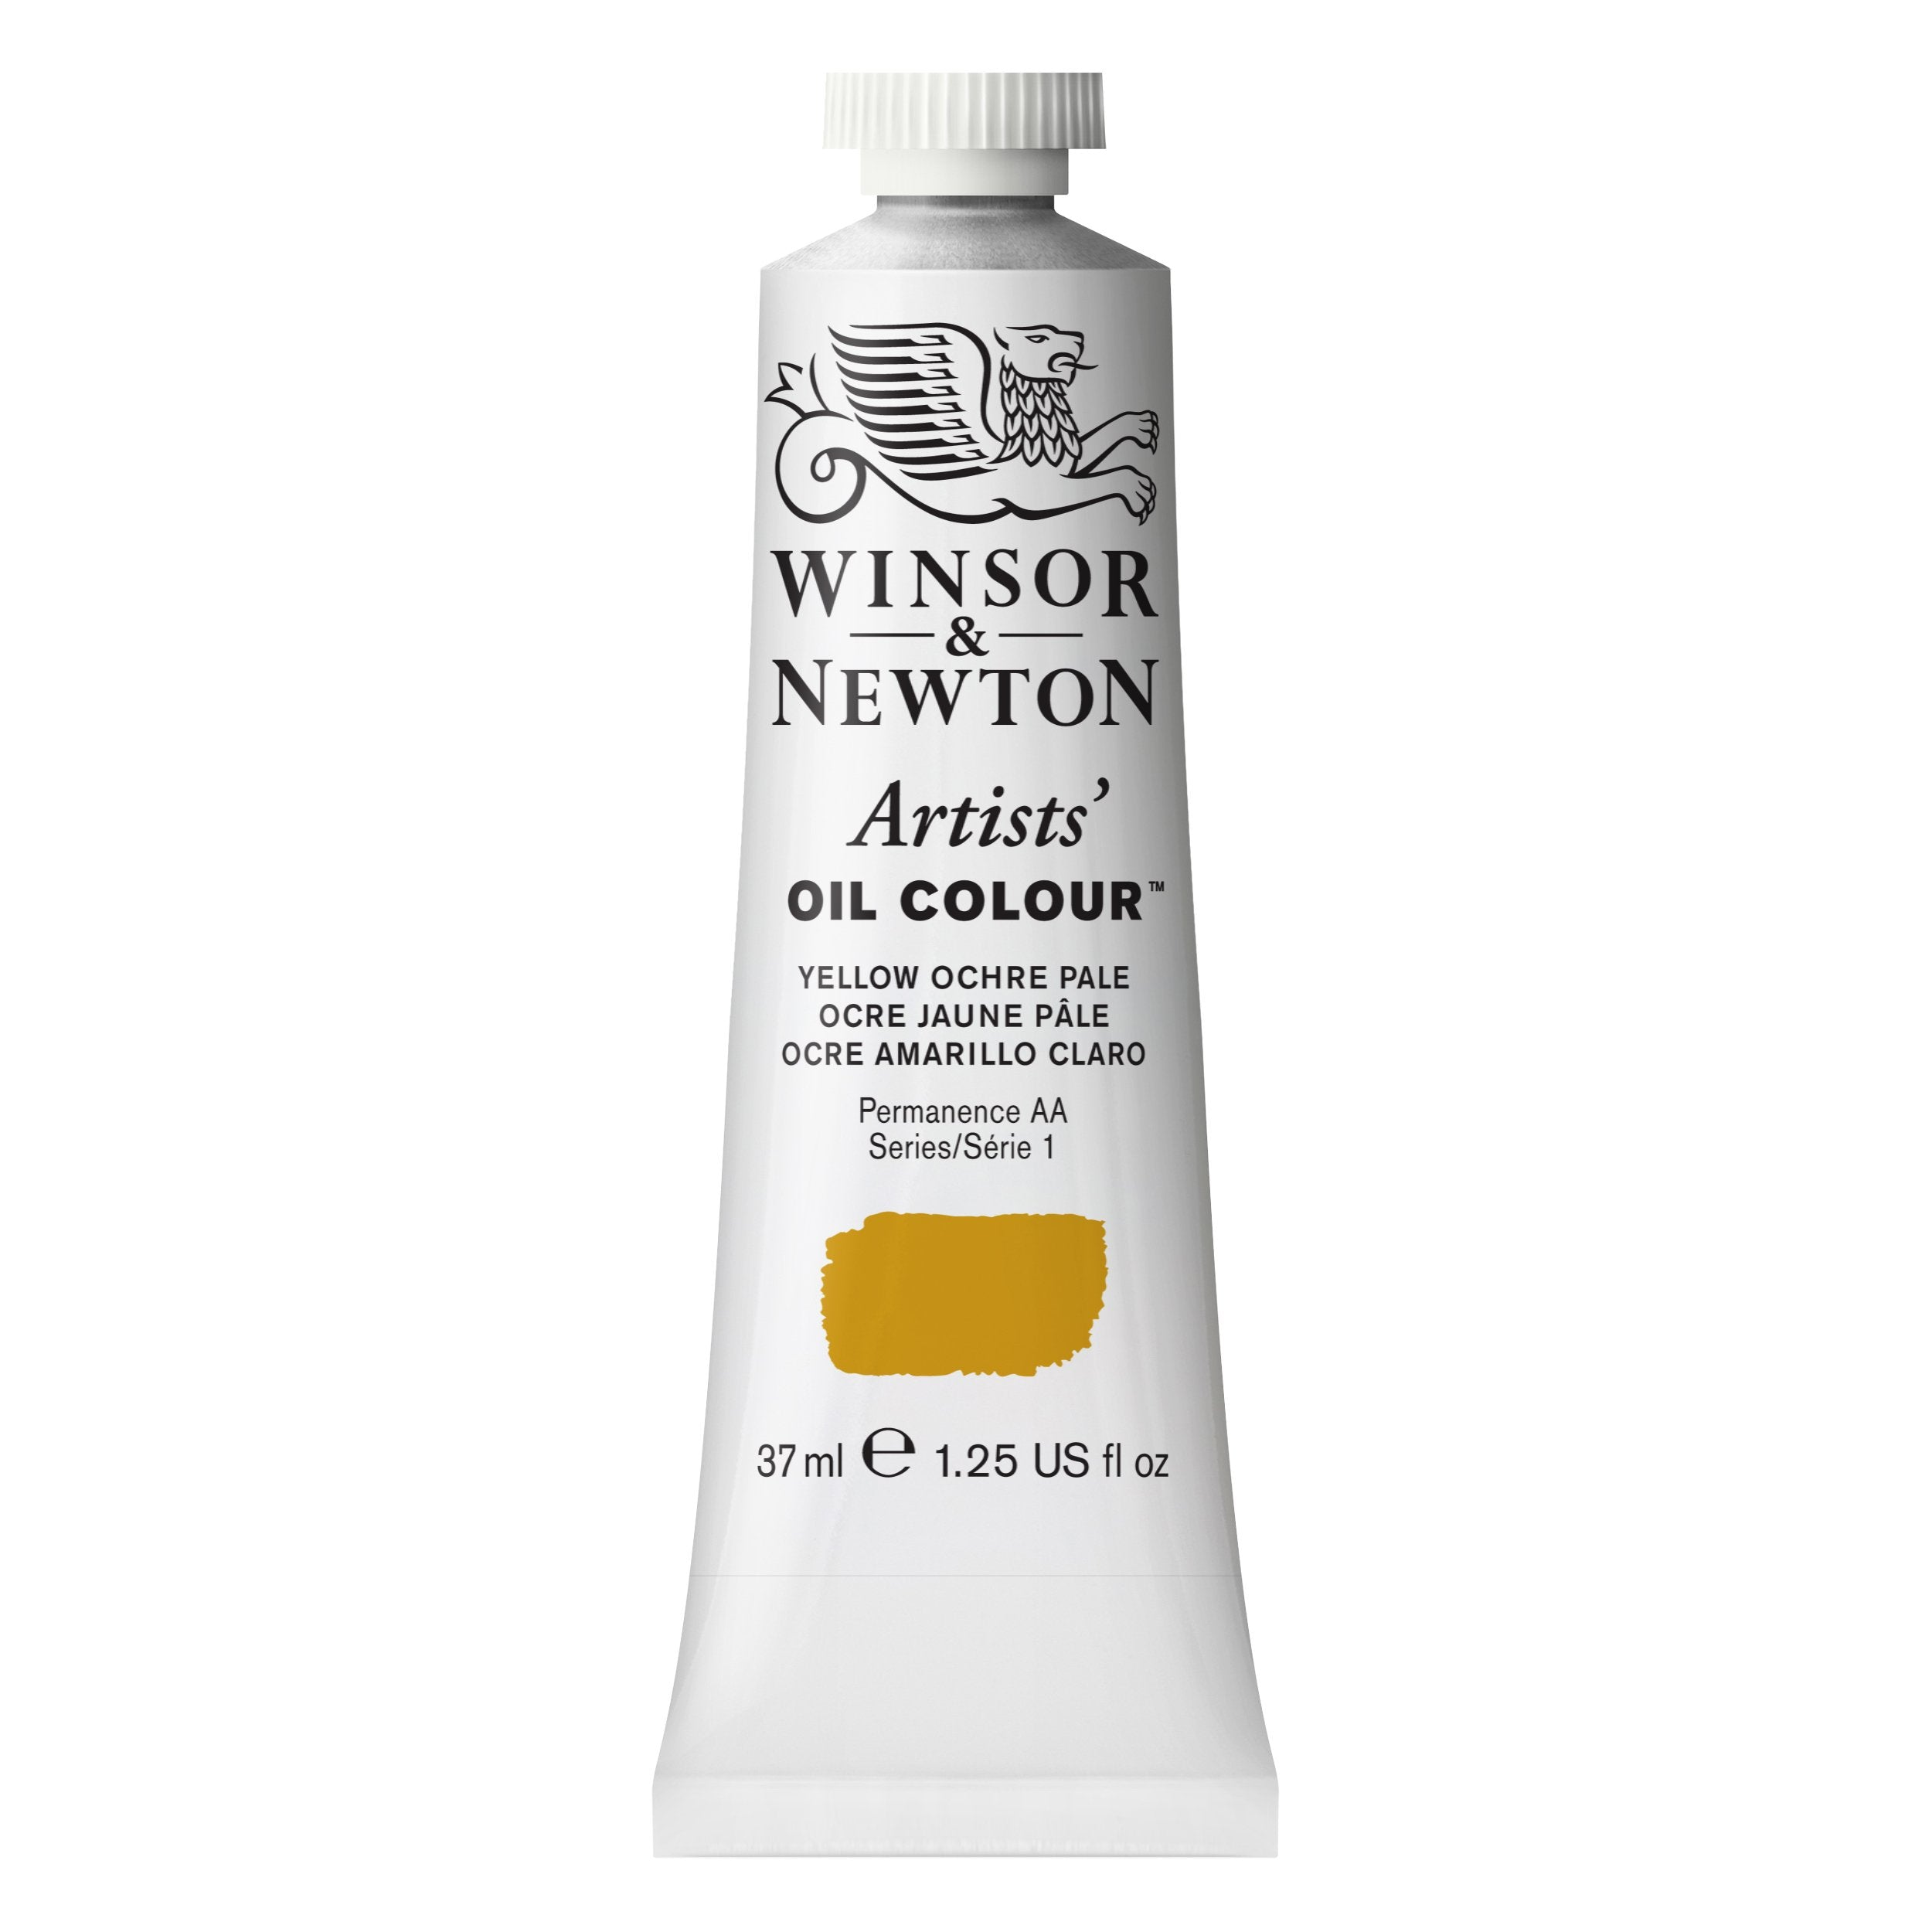 Winsor & Newton Artists Oil Color, 37ml, Yellow Ochre Pale